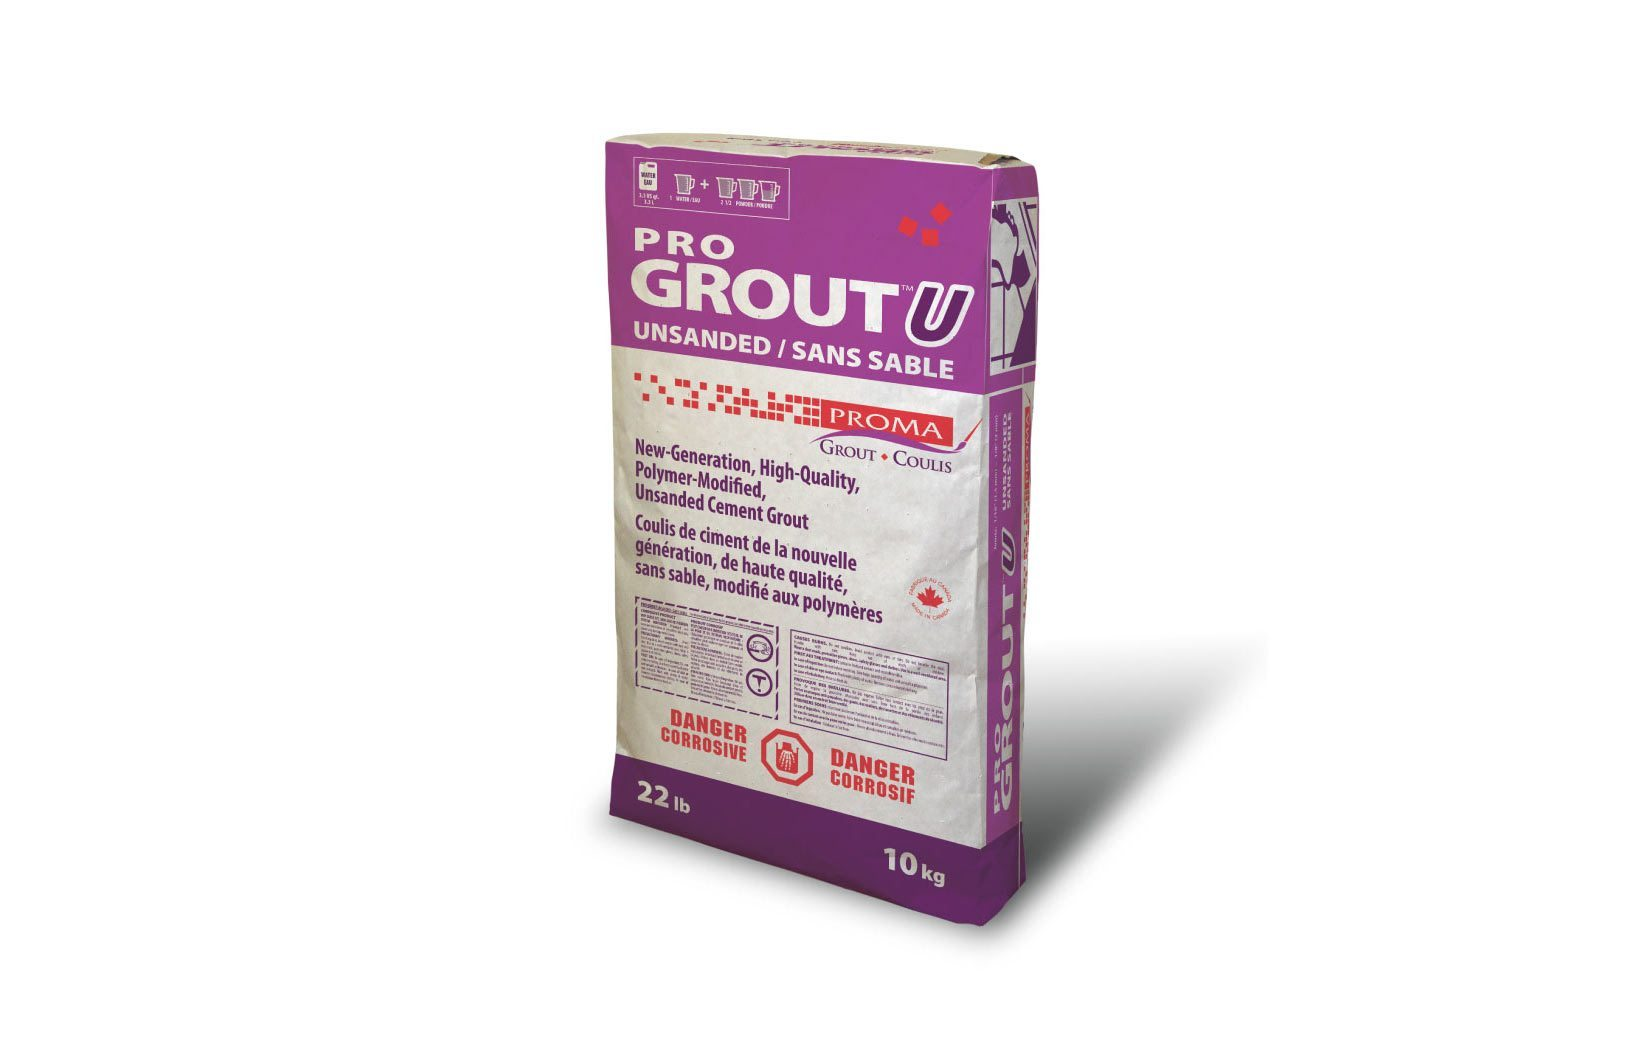 Pro Grout Unsanded